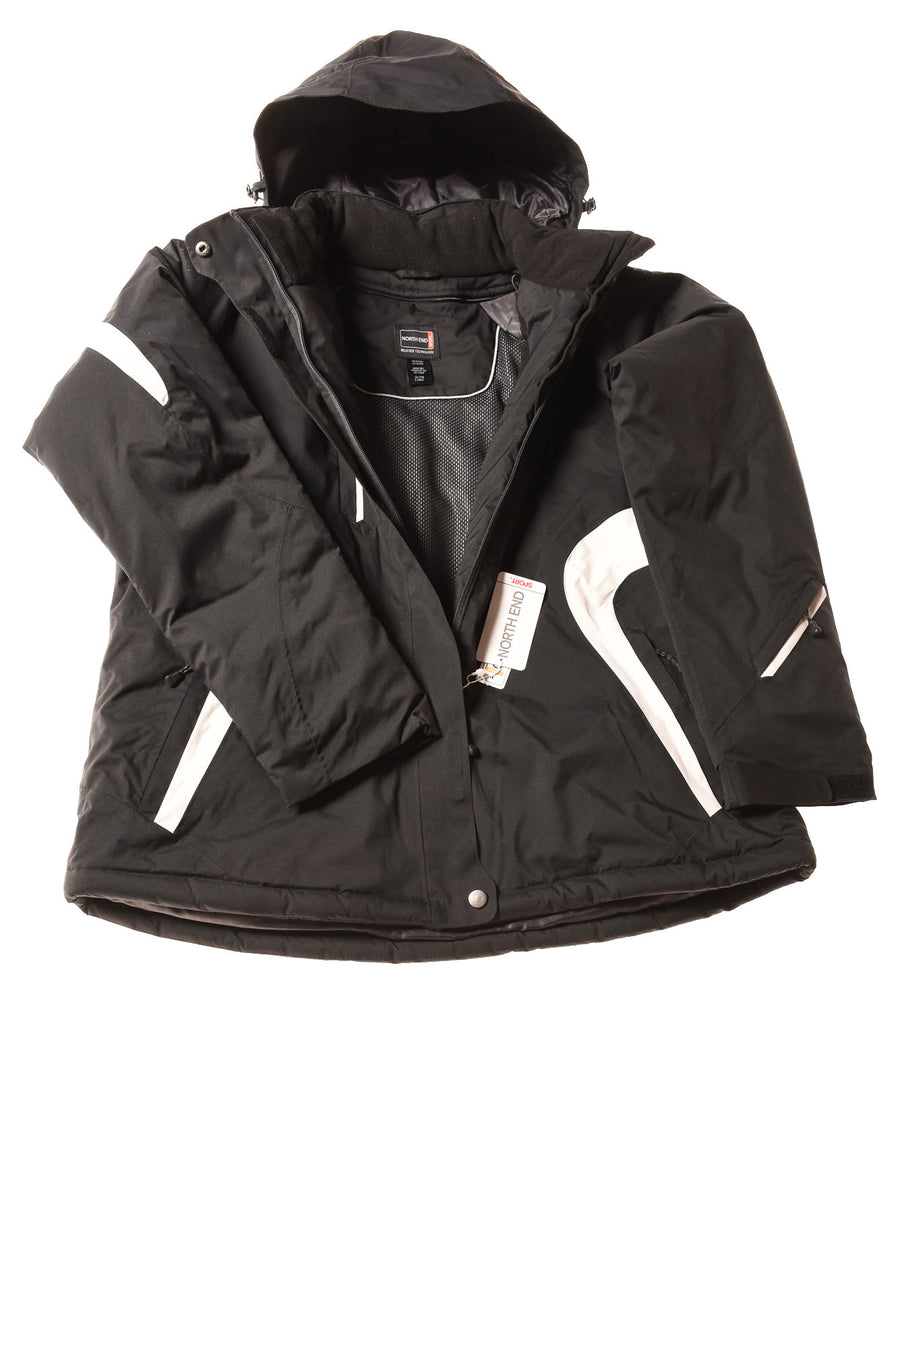 NEW North End Sport Women's Jacket X-Large Black